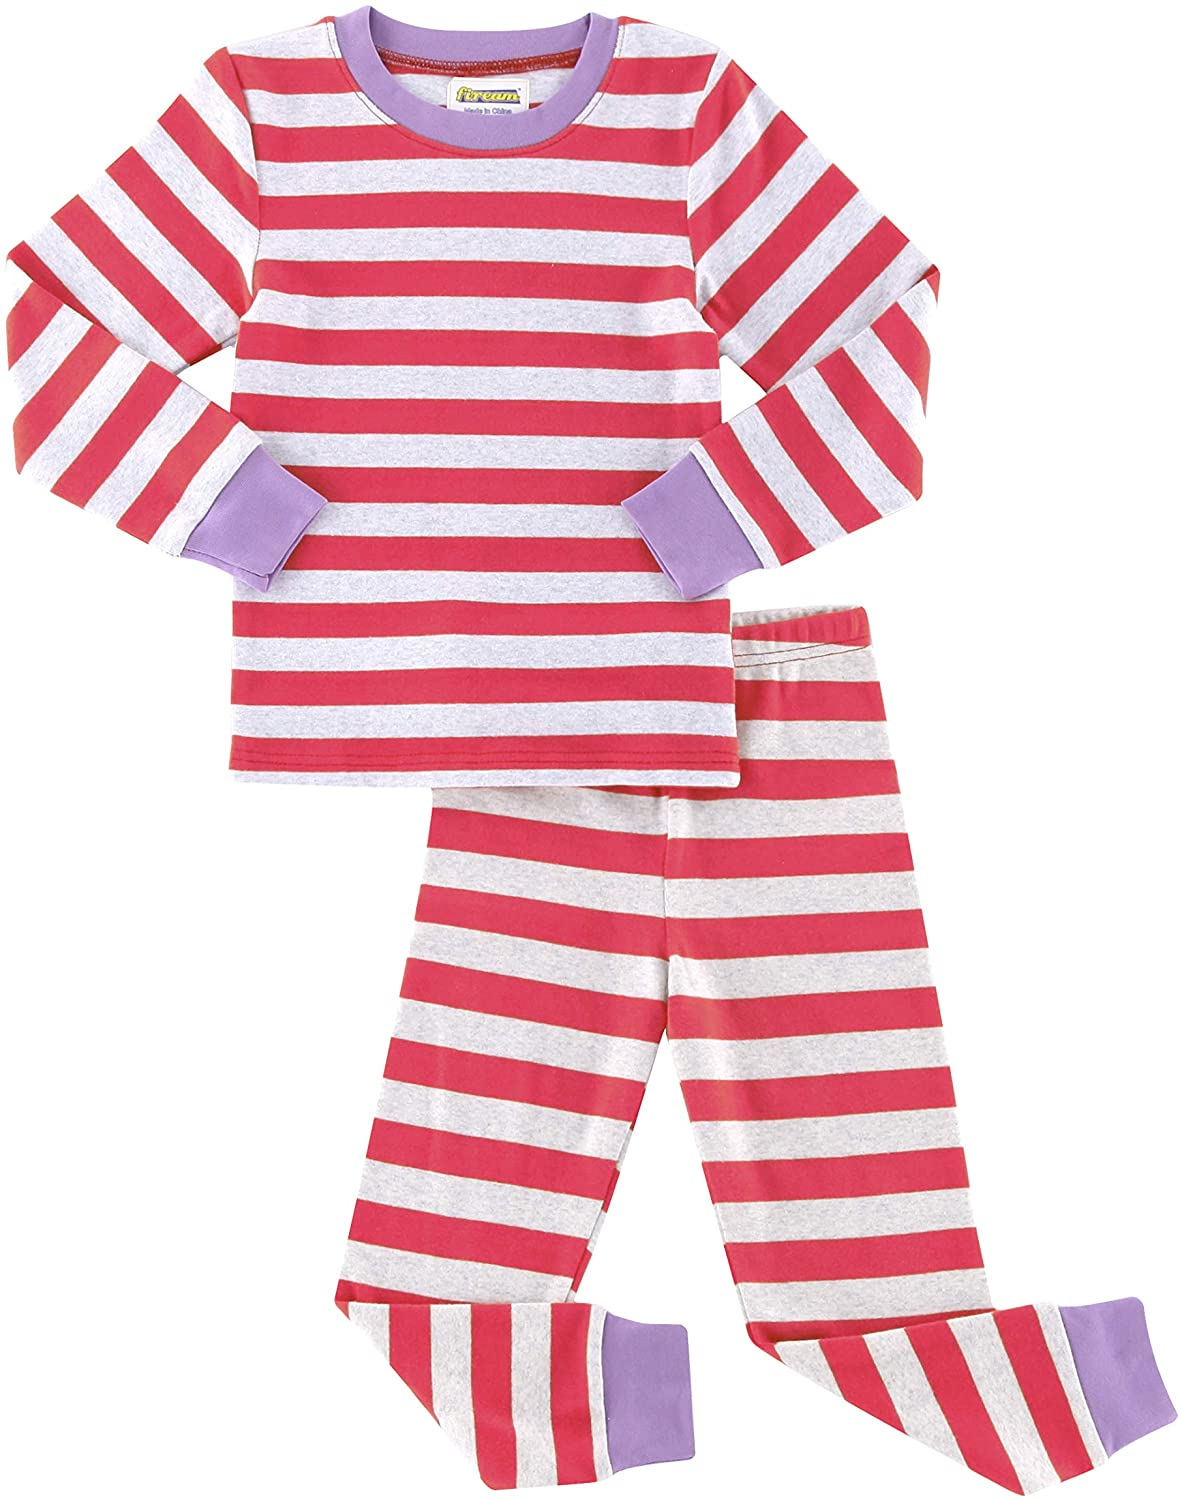 Fiream Girls Boys Pajamas Sets Cotton Striped Long Sleeve Thickened Sleepwear for Girls and Boys Size 12 Month-13 Years